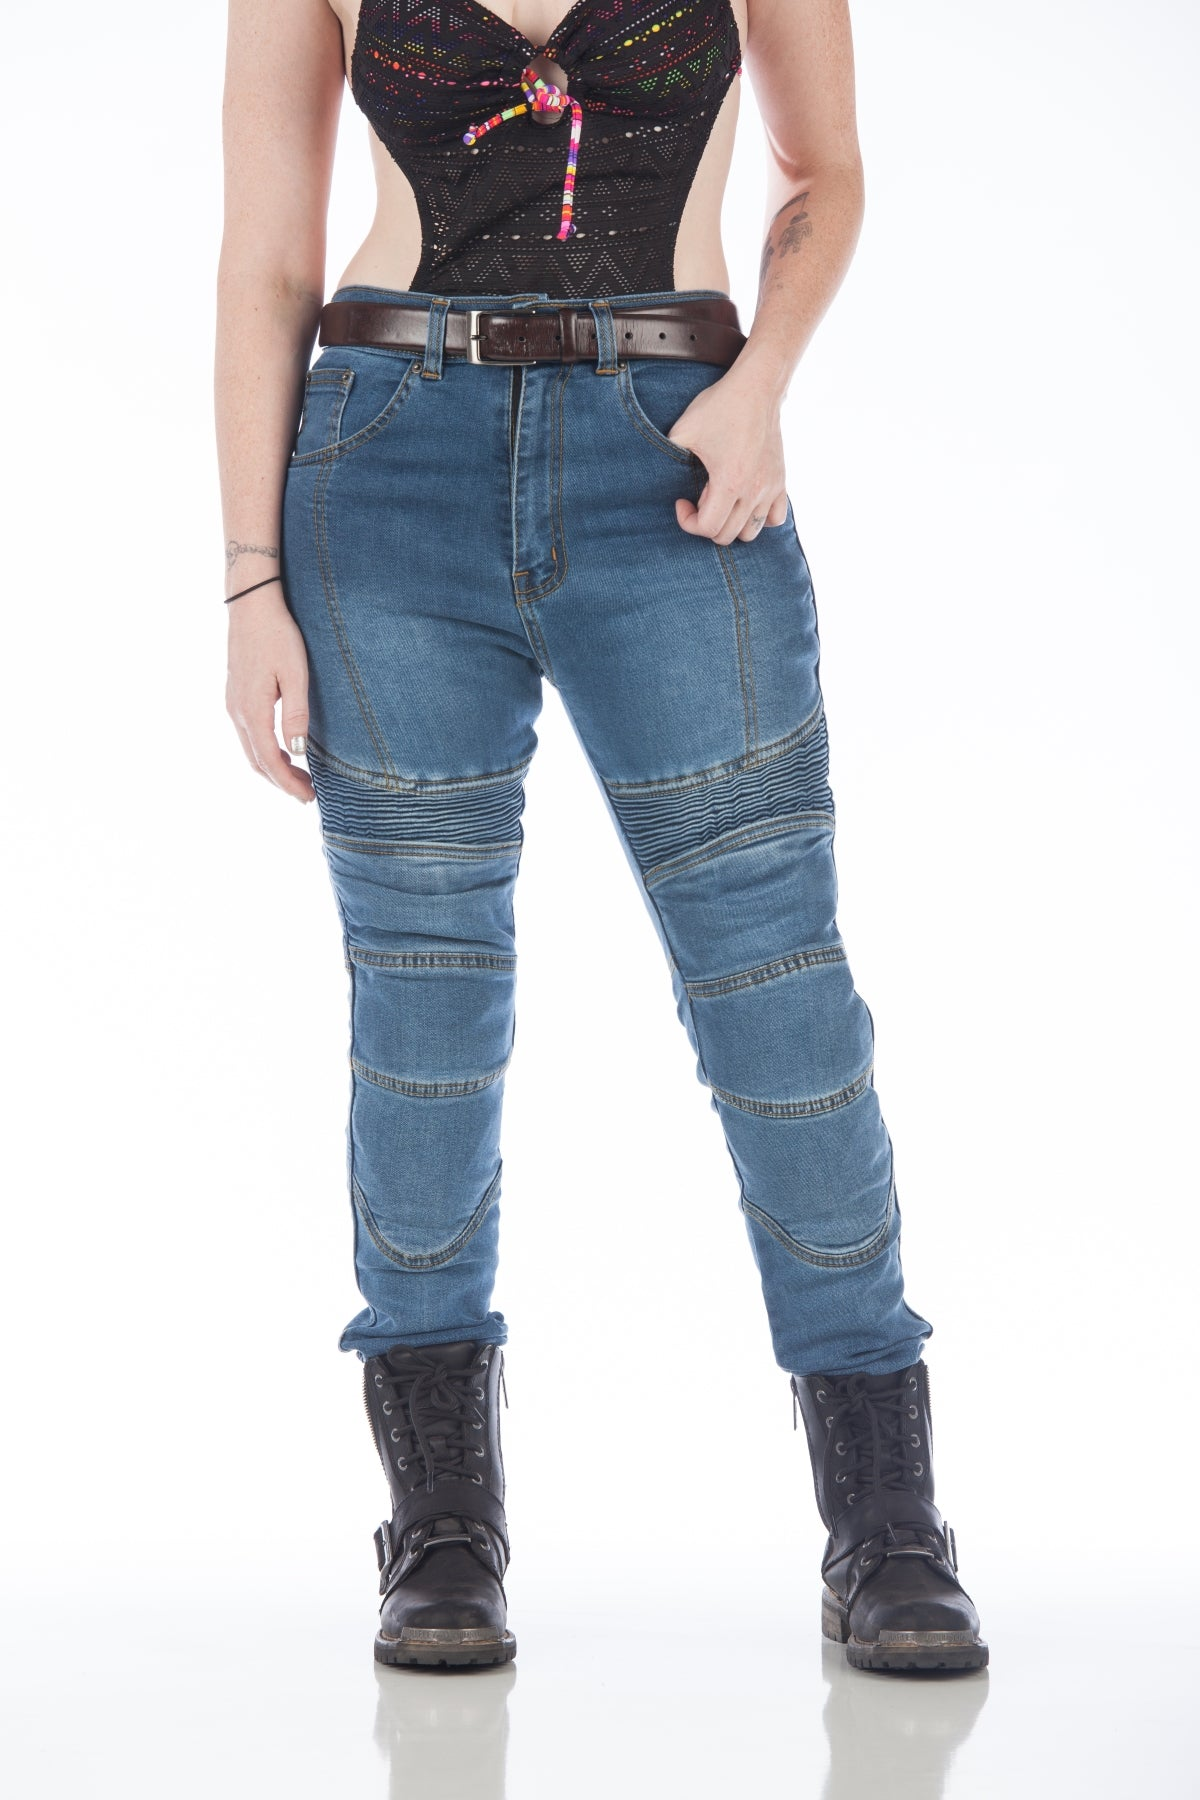 Women's Motorcycle Jeans!